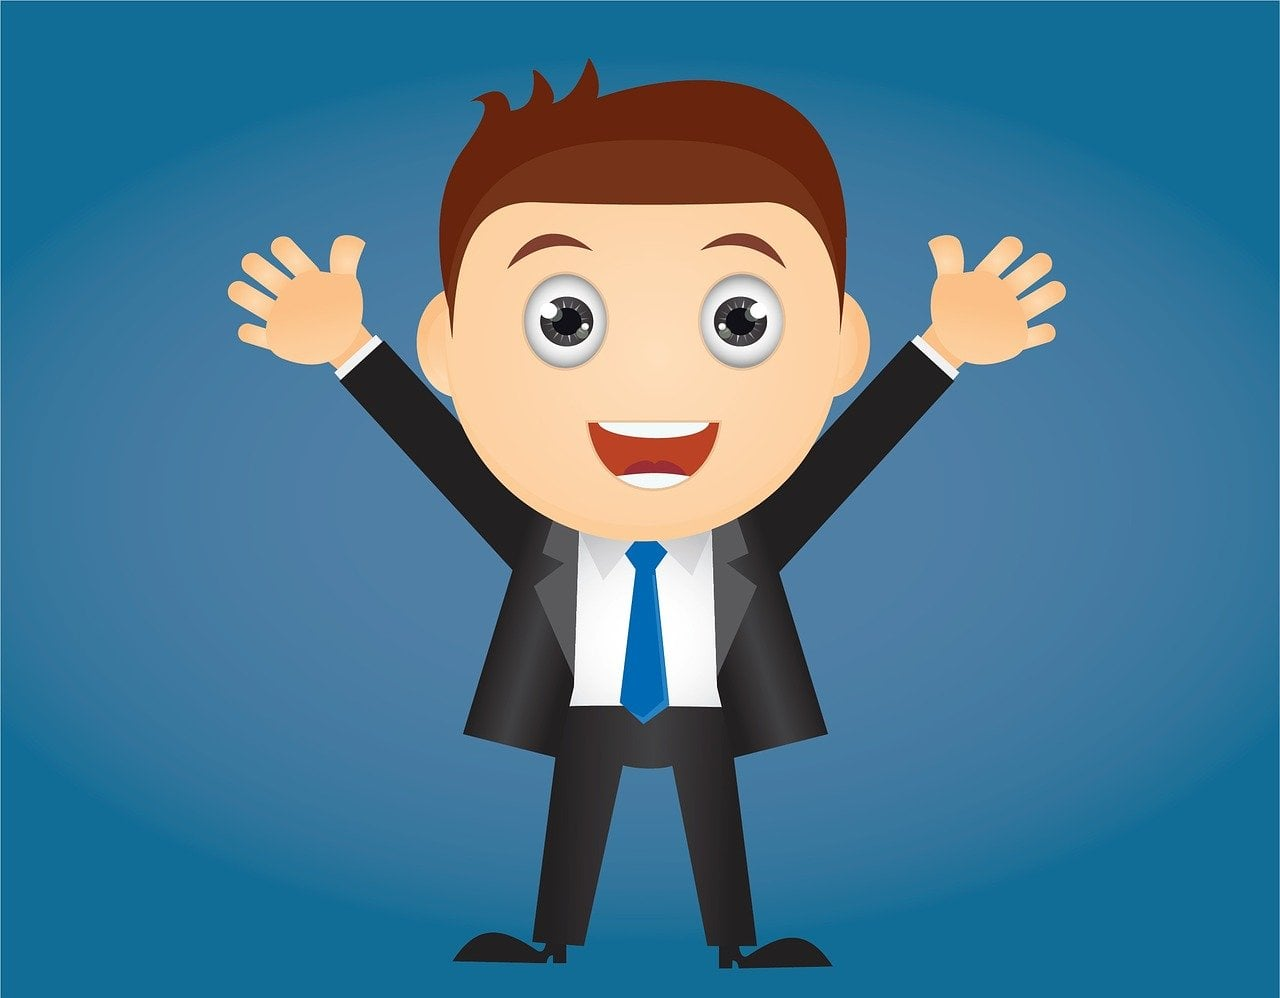 Top 10 companies with the happiest employees